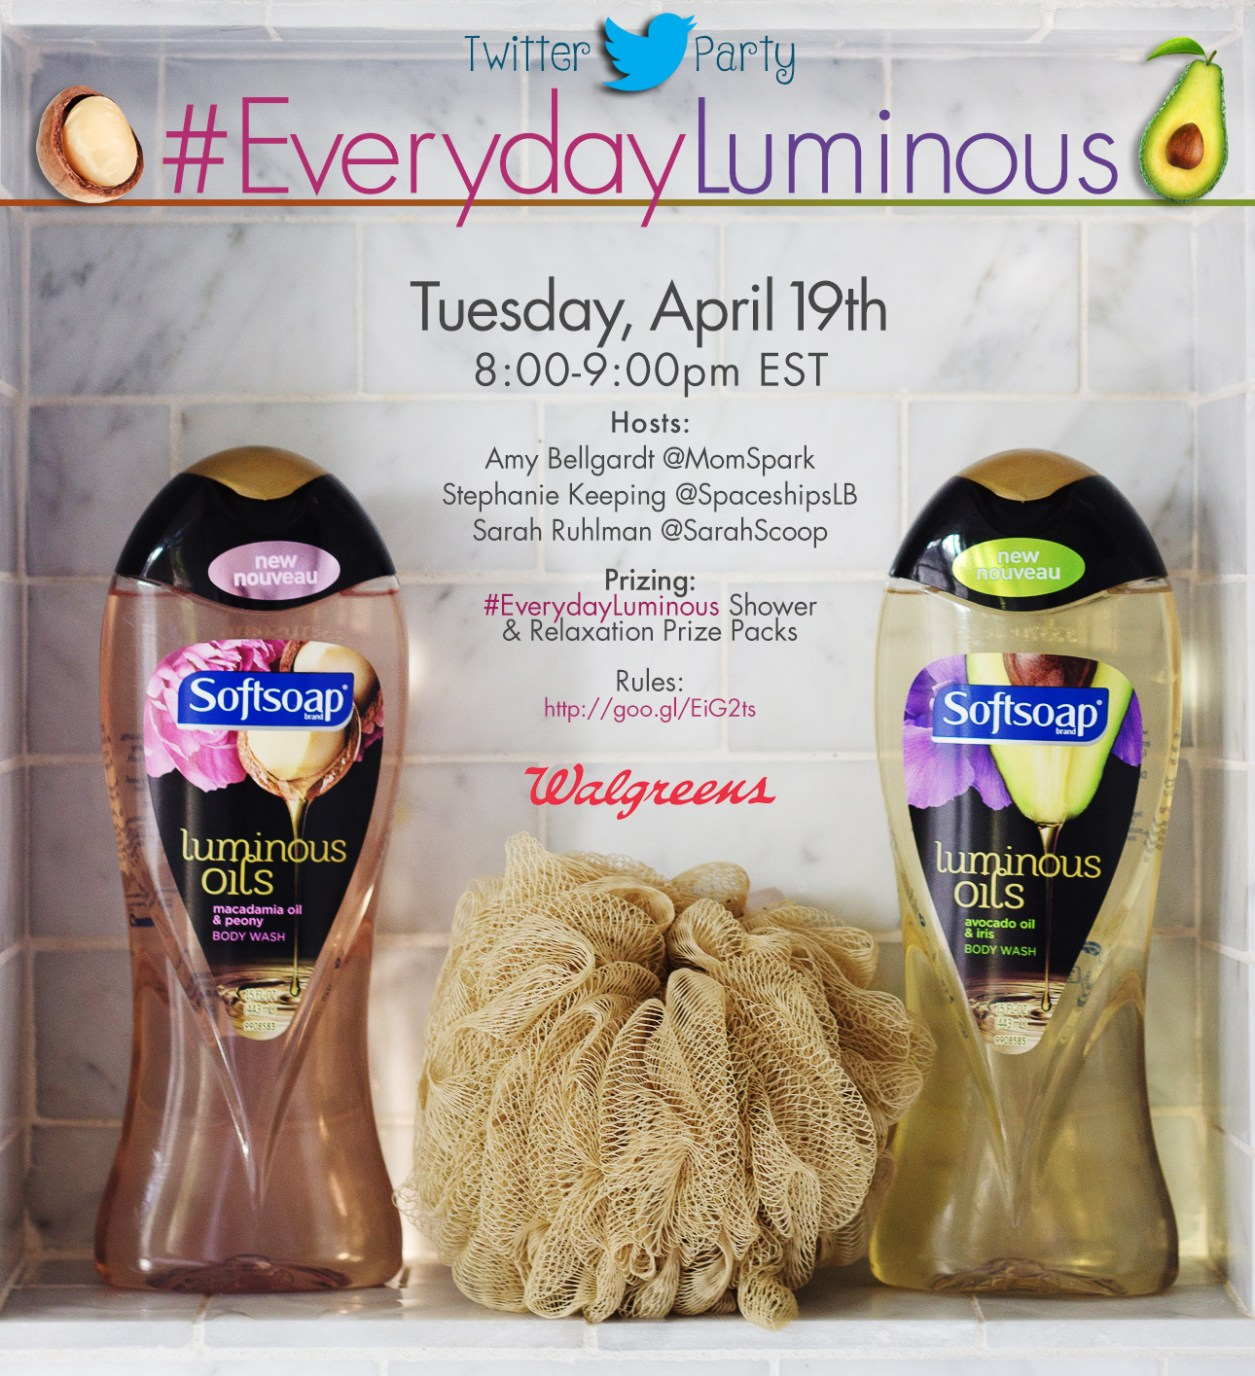 SOFTSOAP Twitter party invite